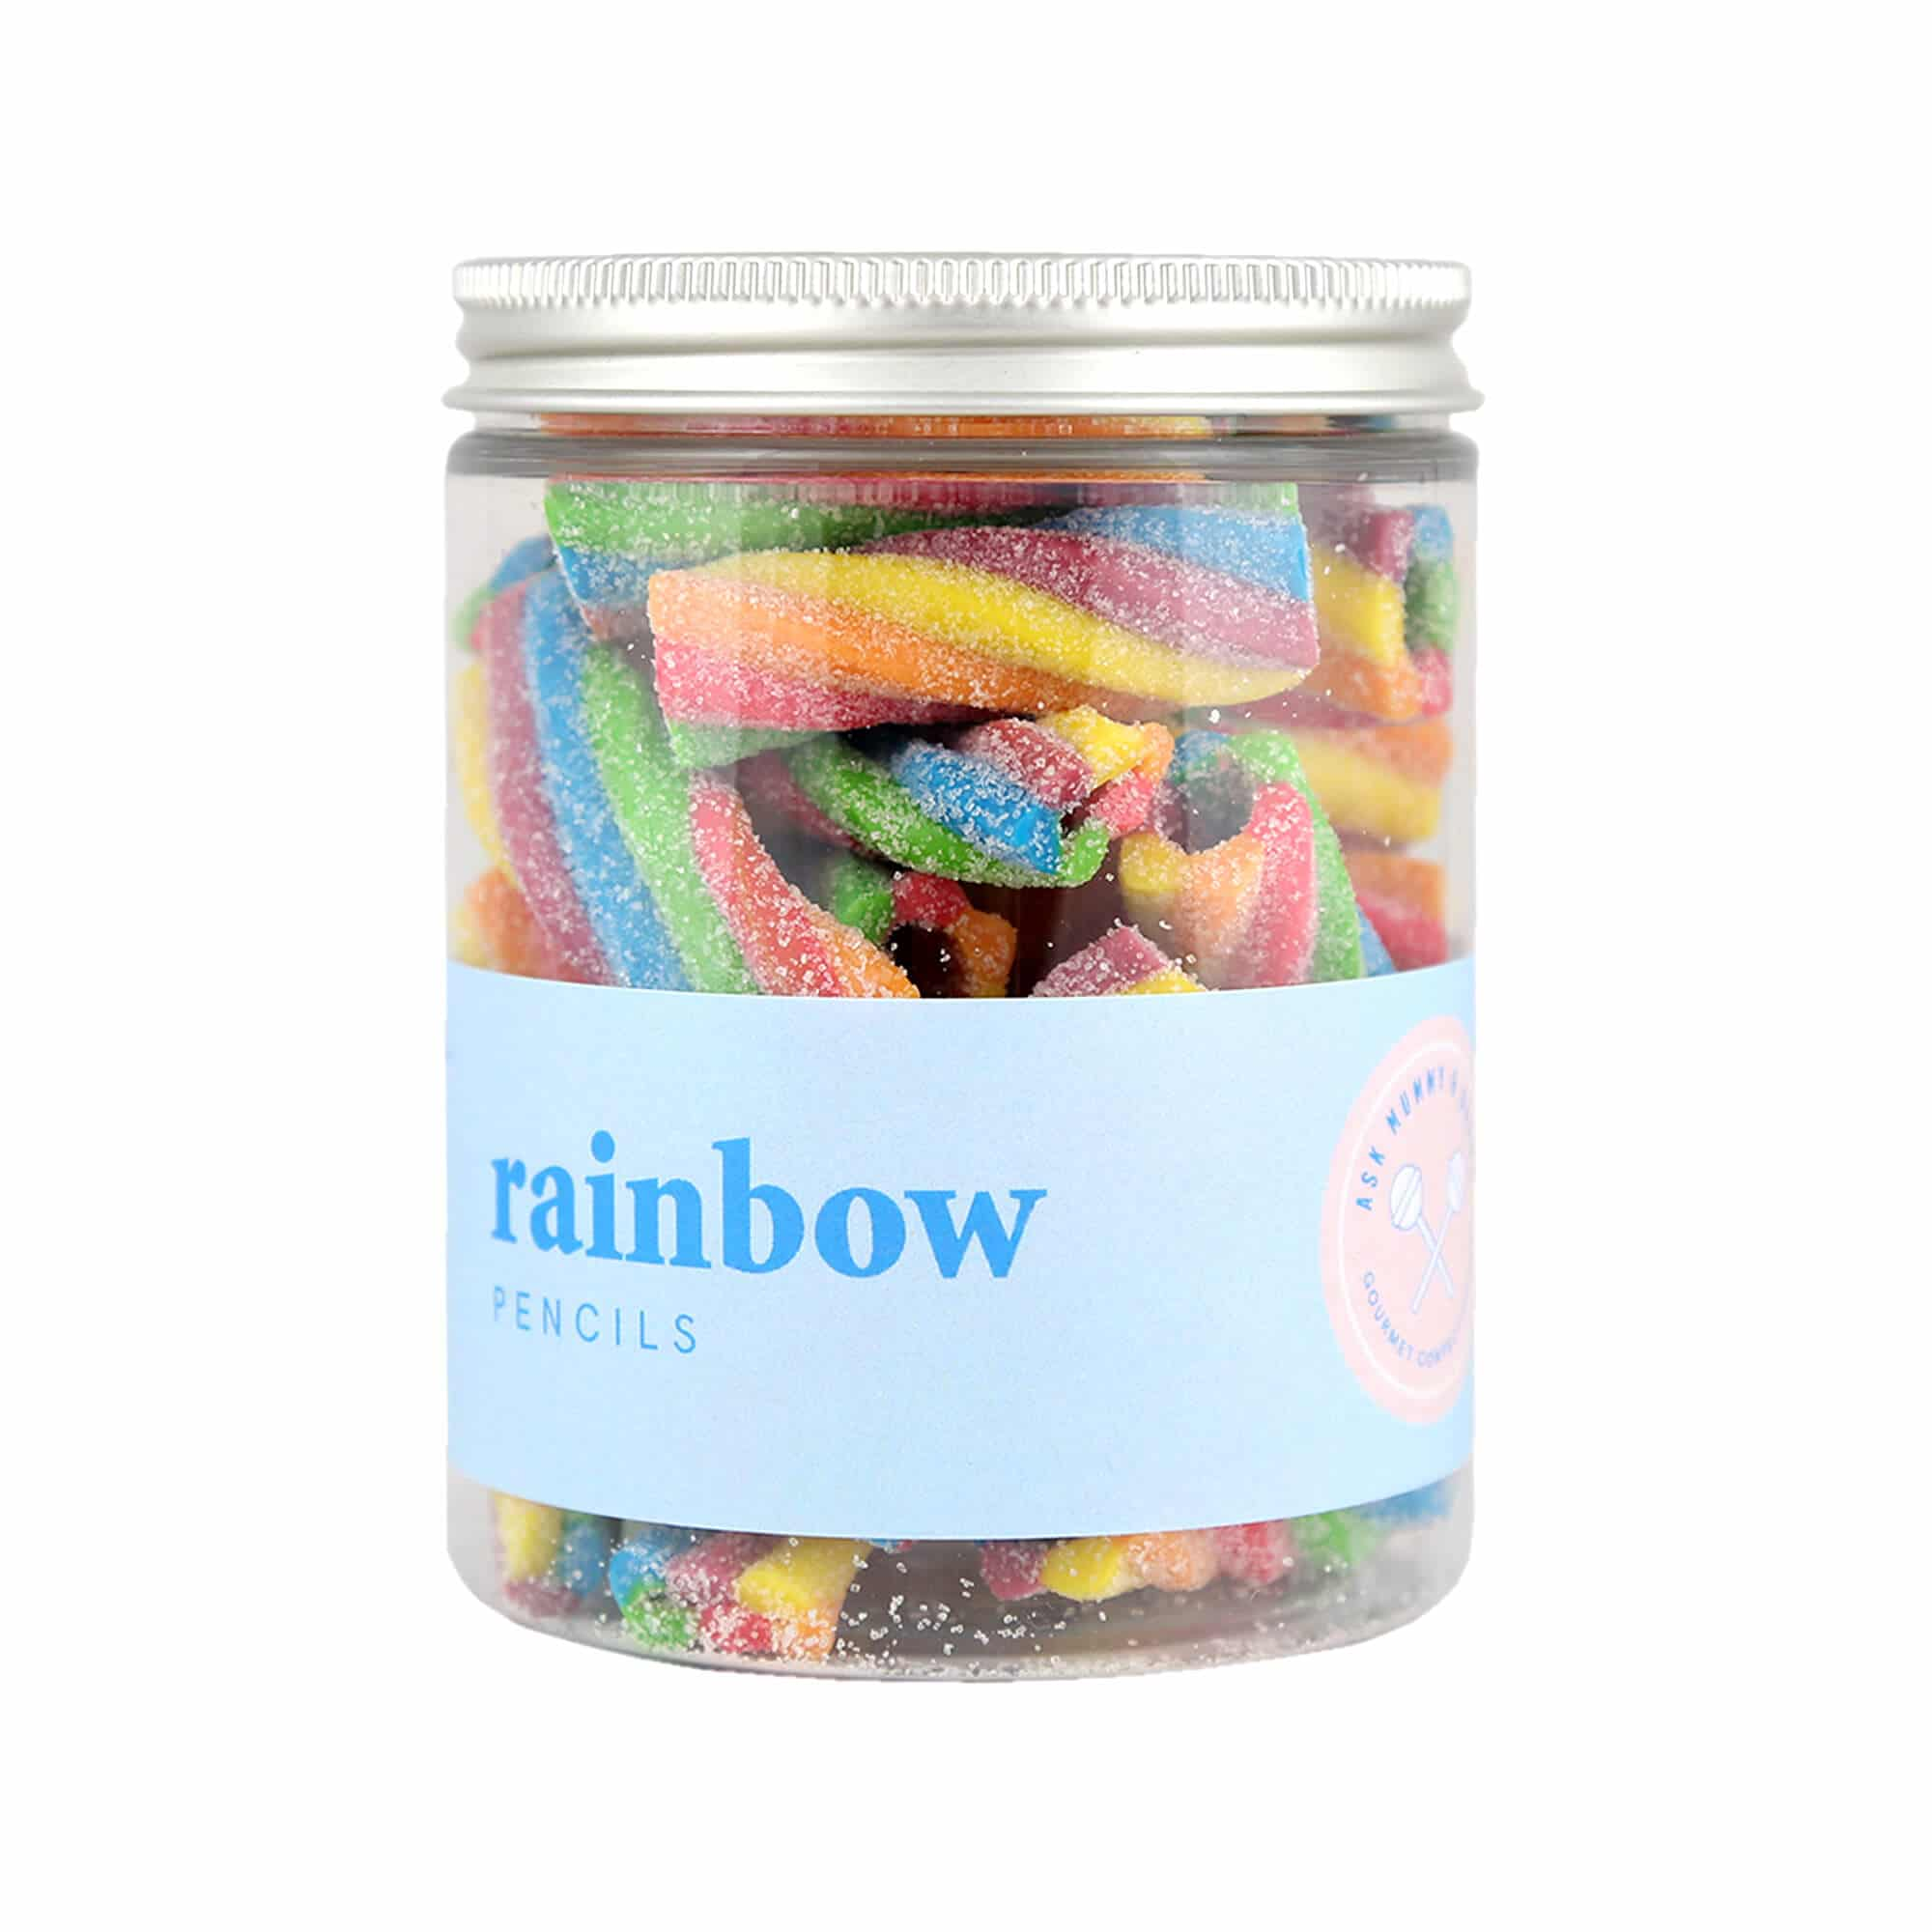 A jar of Rainbow Pencil Sweets